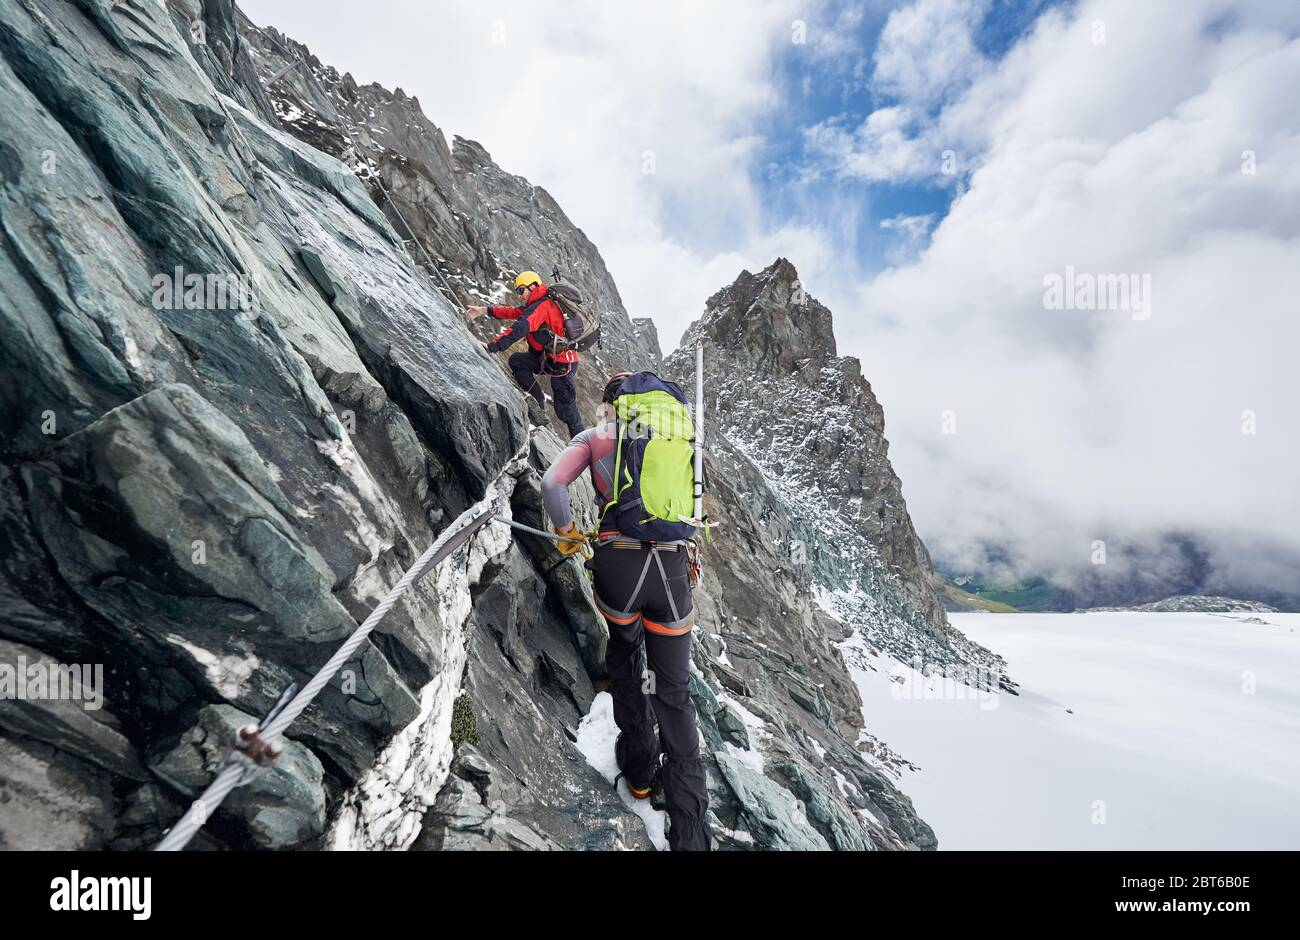 Back view of rock climbers with backpacks using fixed rope while ascending high rocky mountain. Male mountaineers climbing natural rock formation and trying to reach mountaintop. Stock Photo